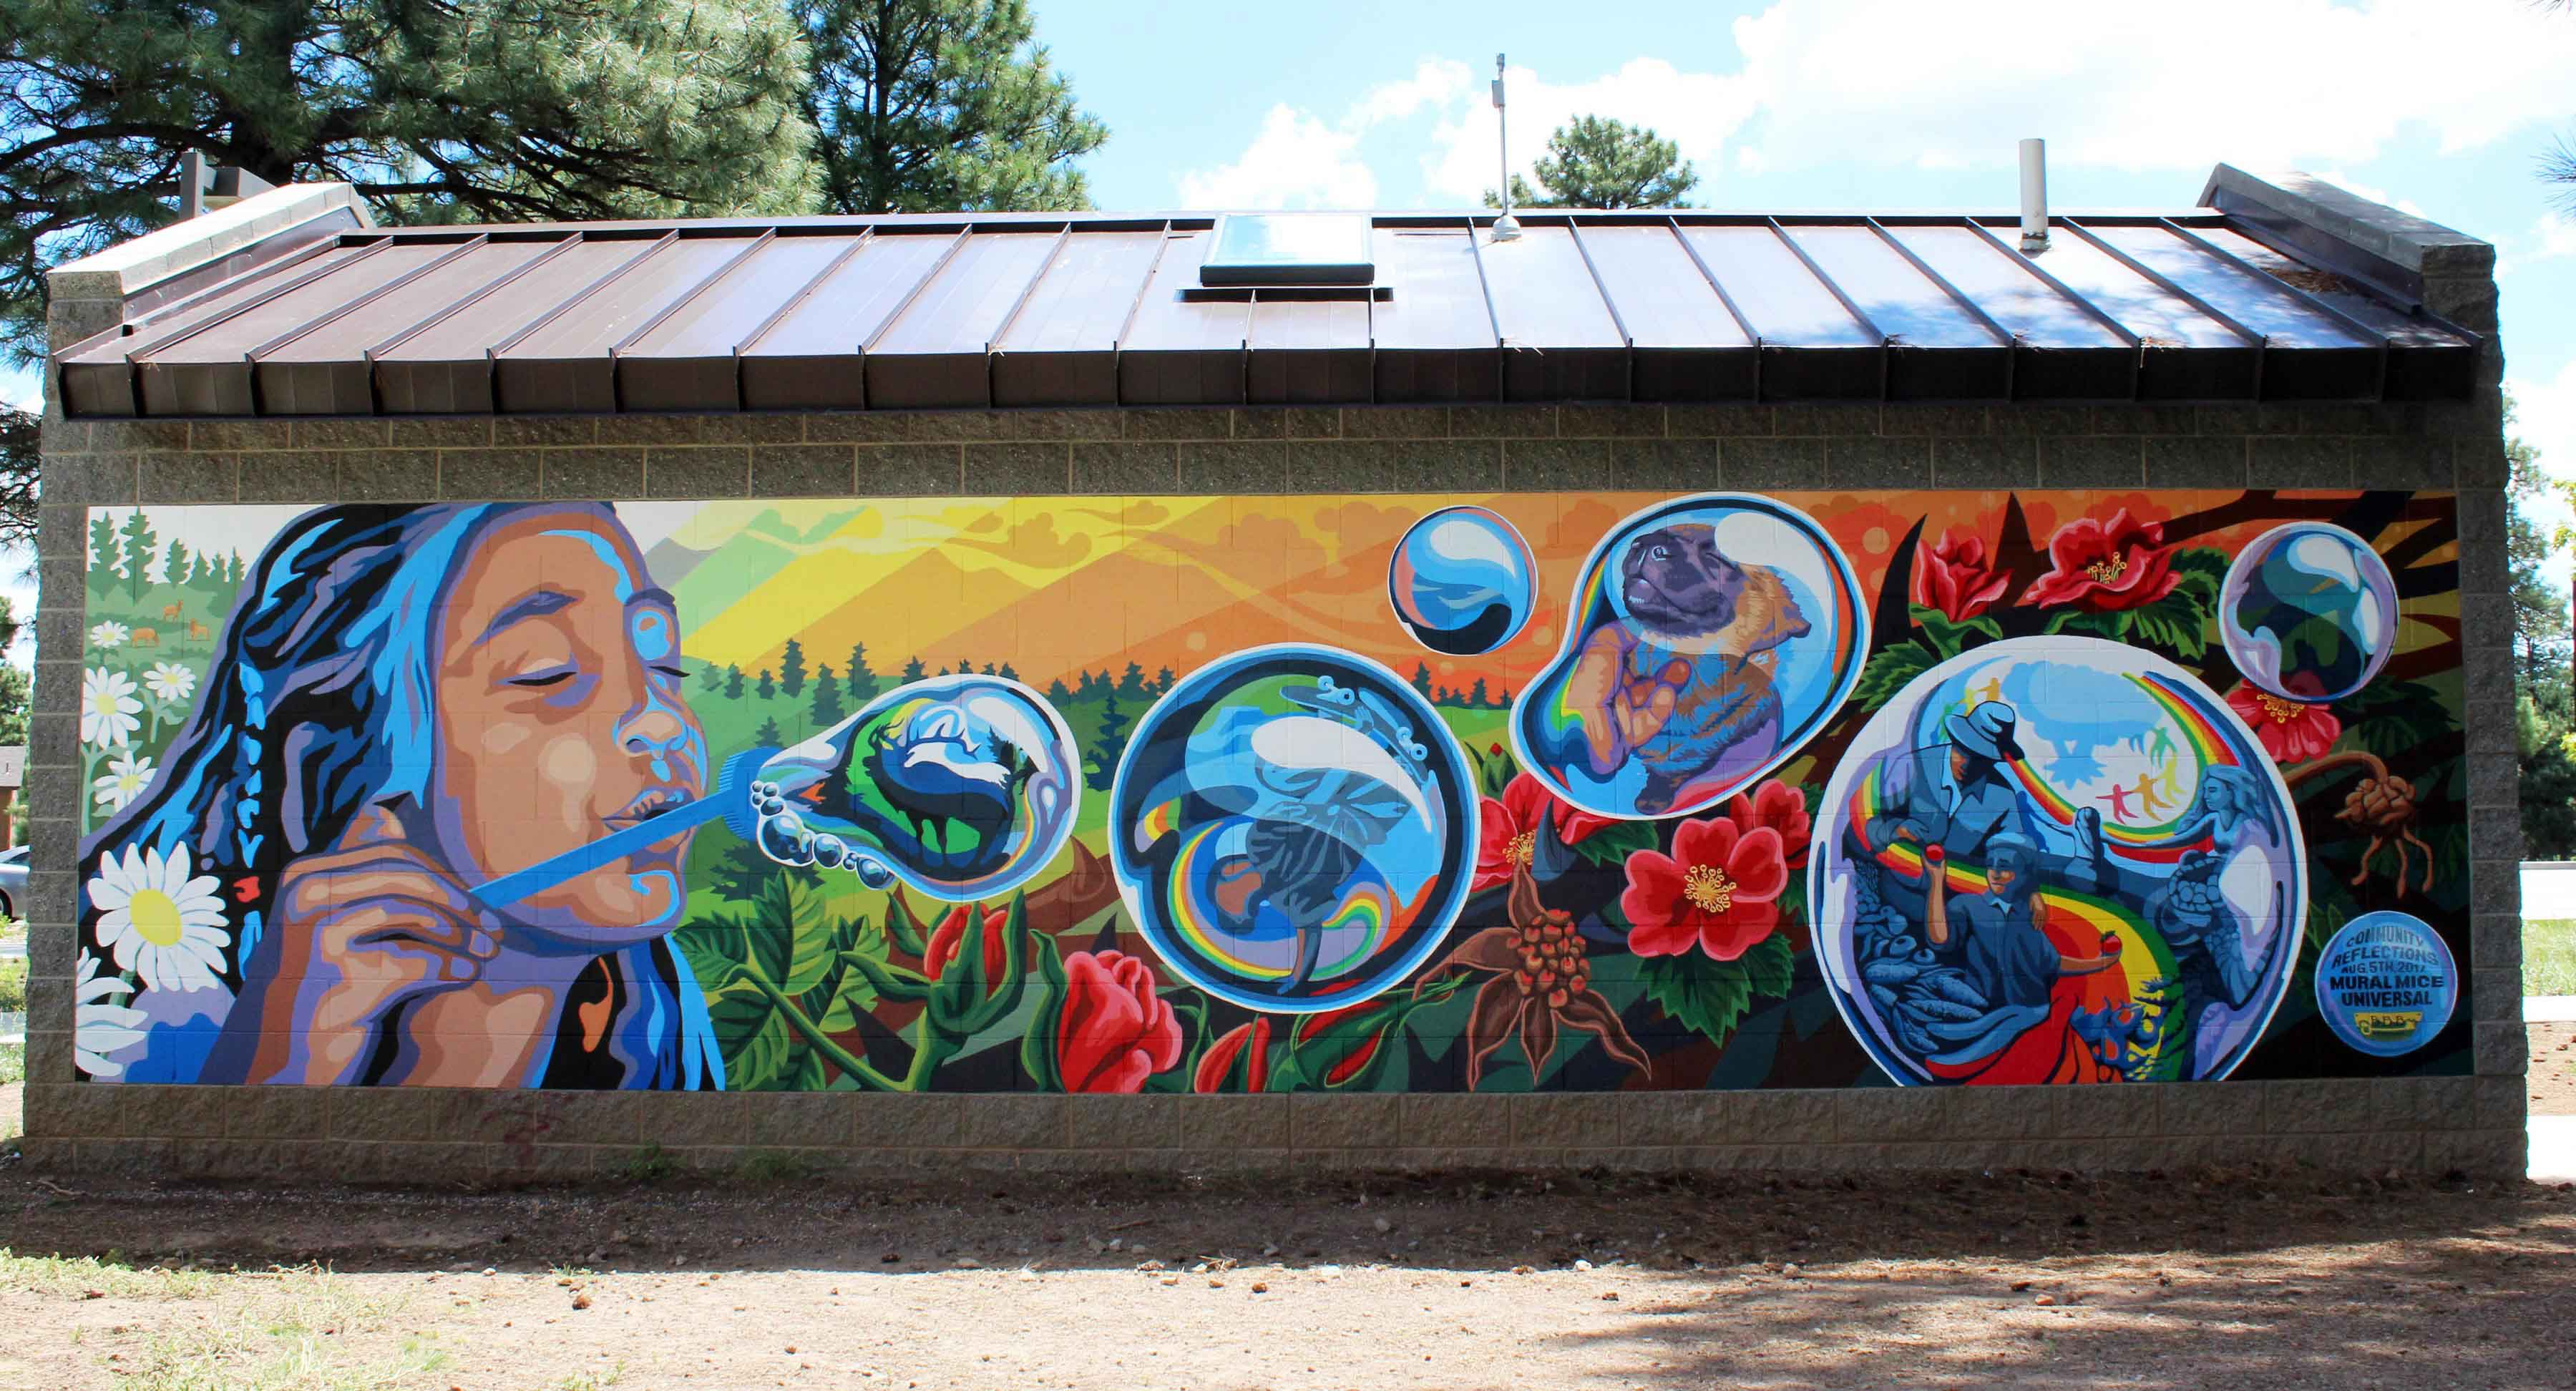 Community Reflections Mural at Bushmaster Park